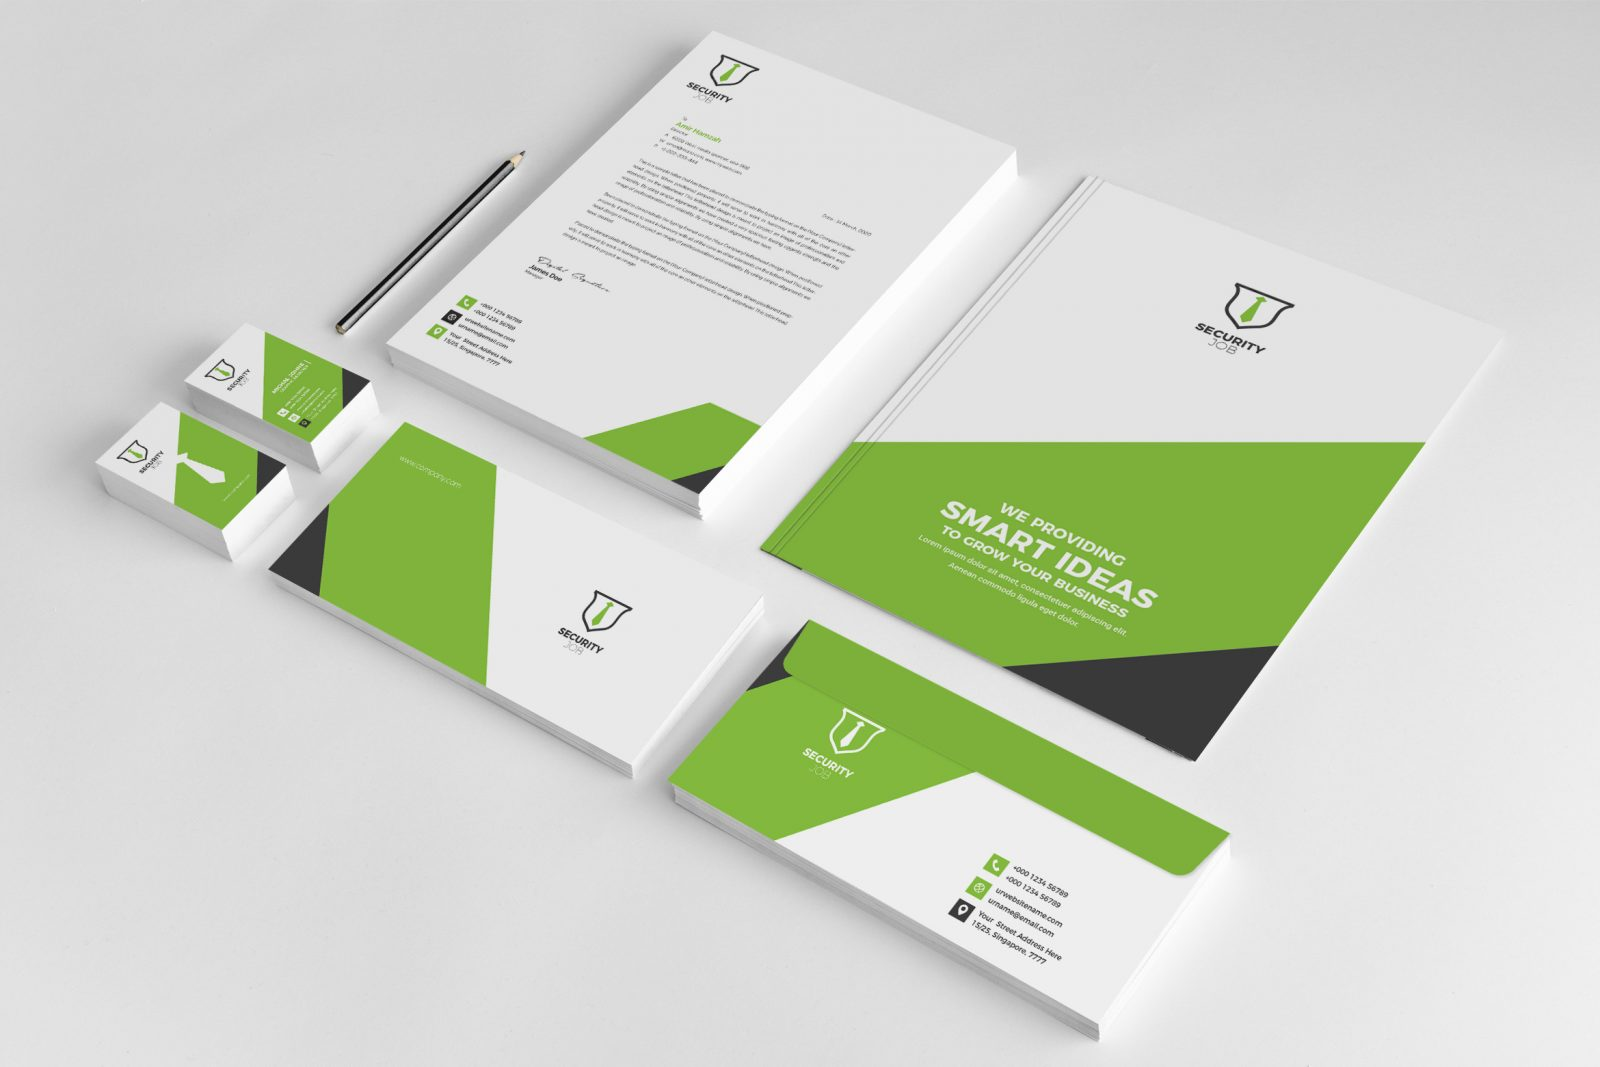 security company creative corporate identity template